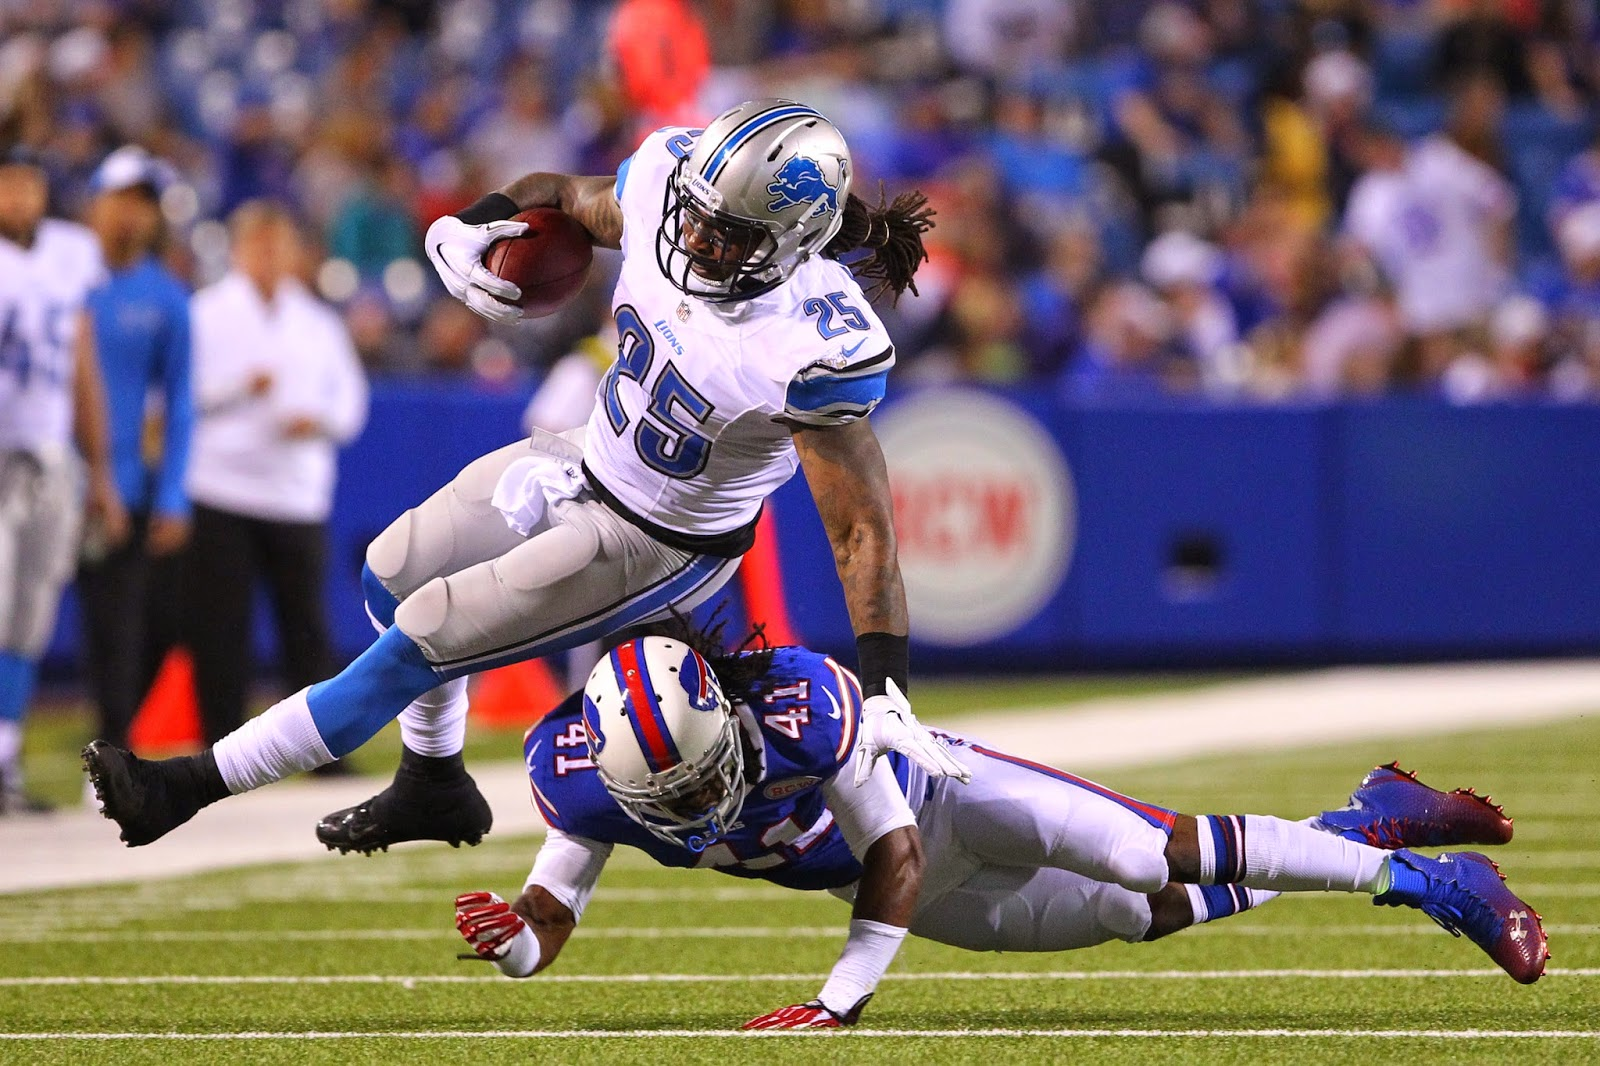 Detroit Lions — With Mikel Leshoure gone, only Nick Fairley remains from 2011 draft